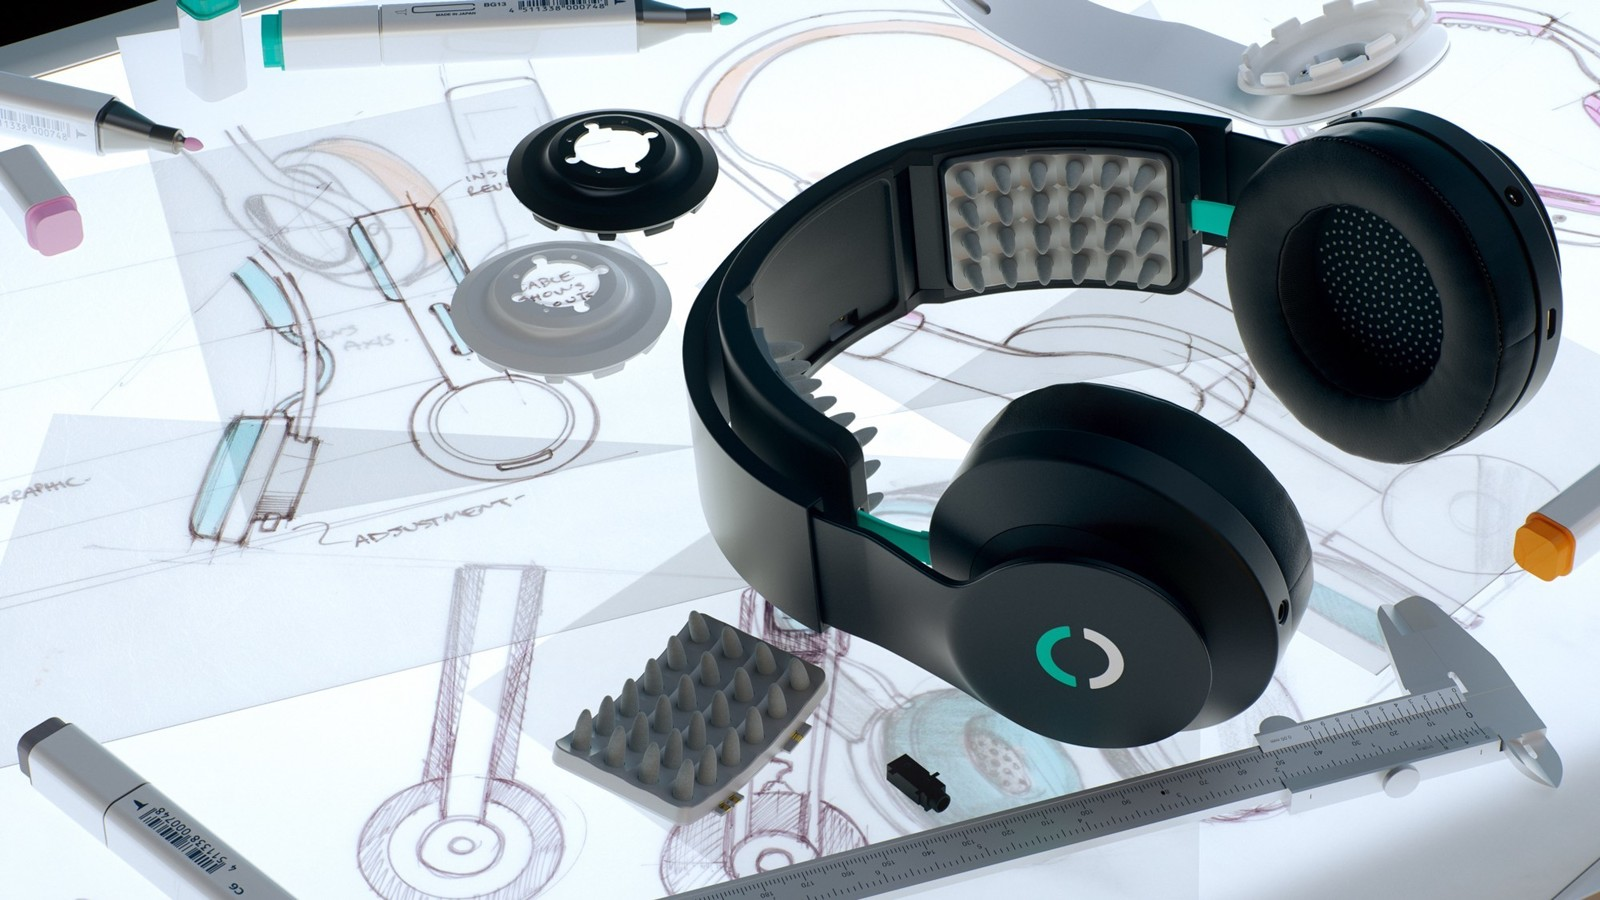 Halo Sport went through an intense design process before the final product was revealed.